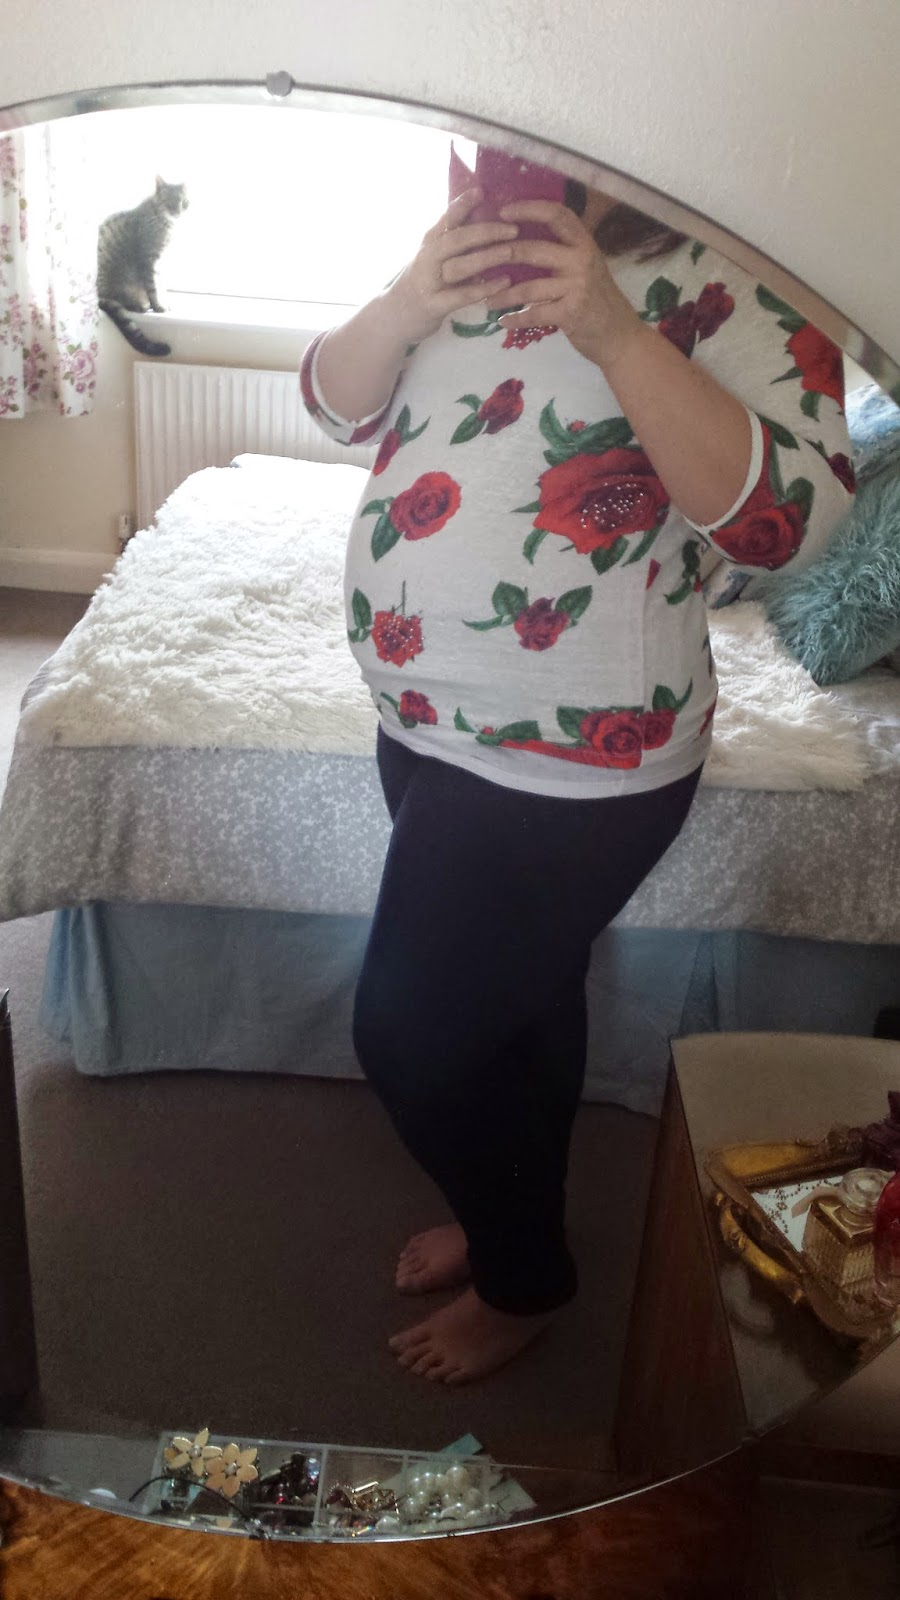 My Pregnancy: Week 25